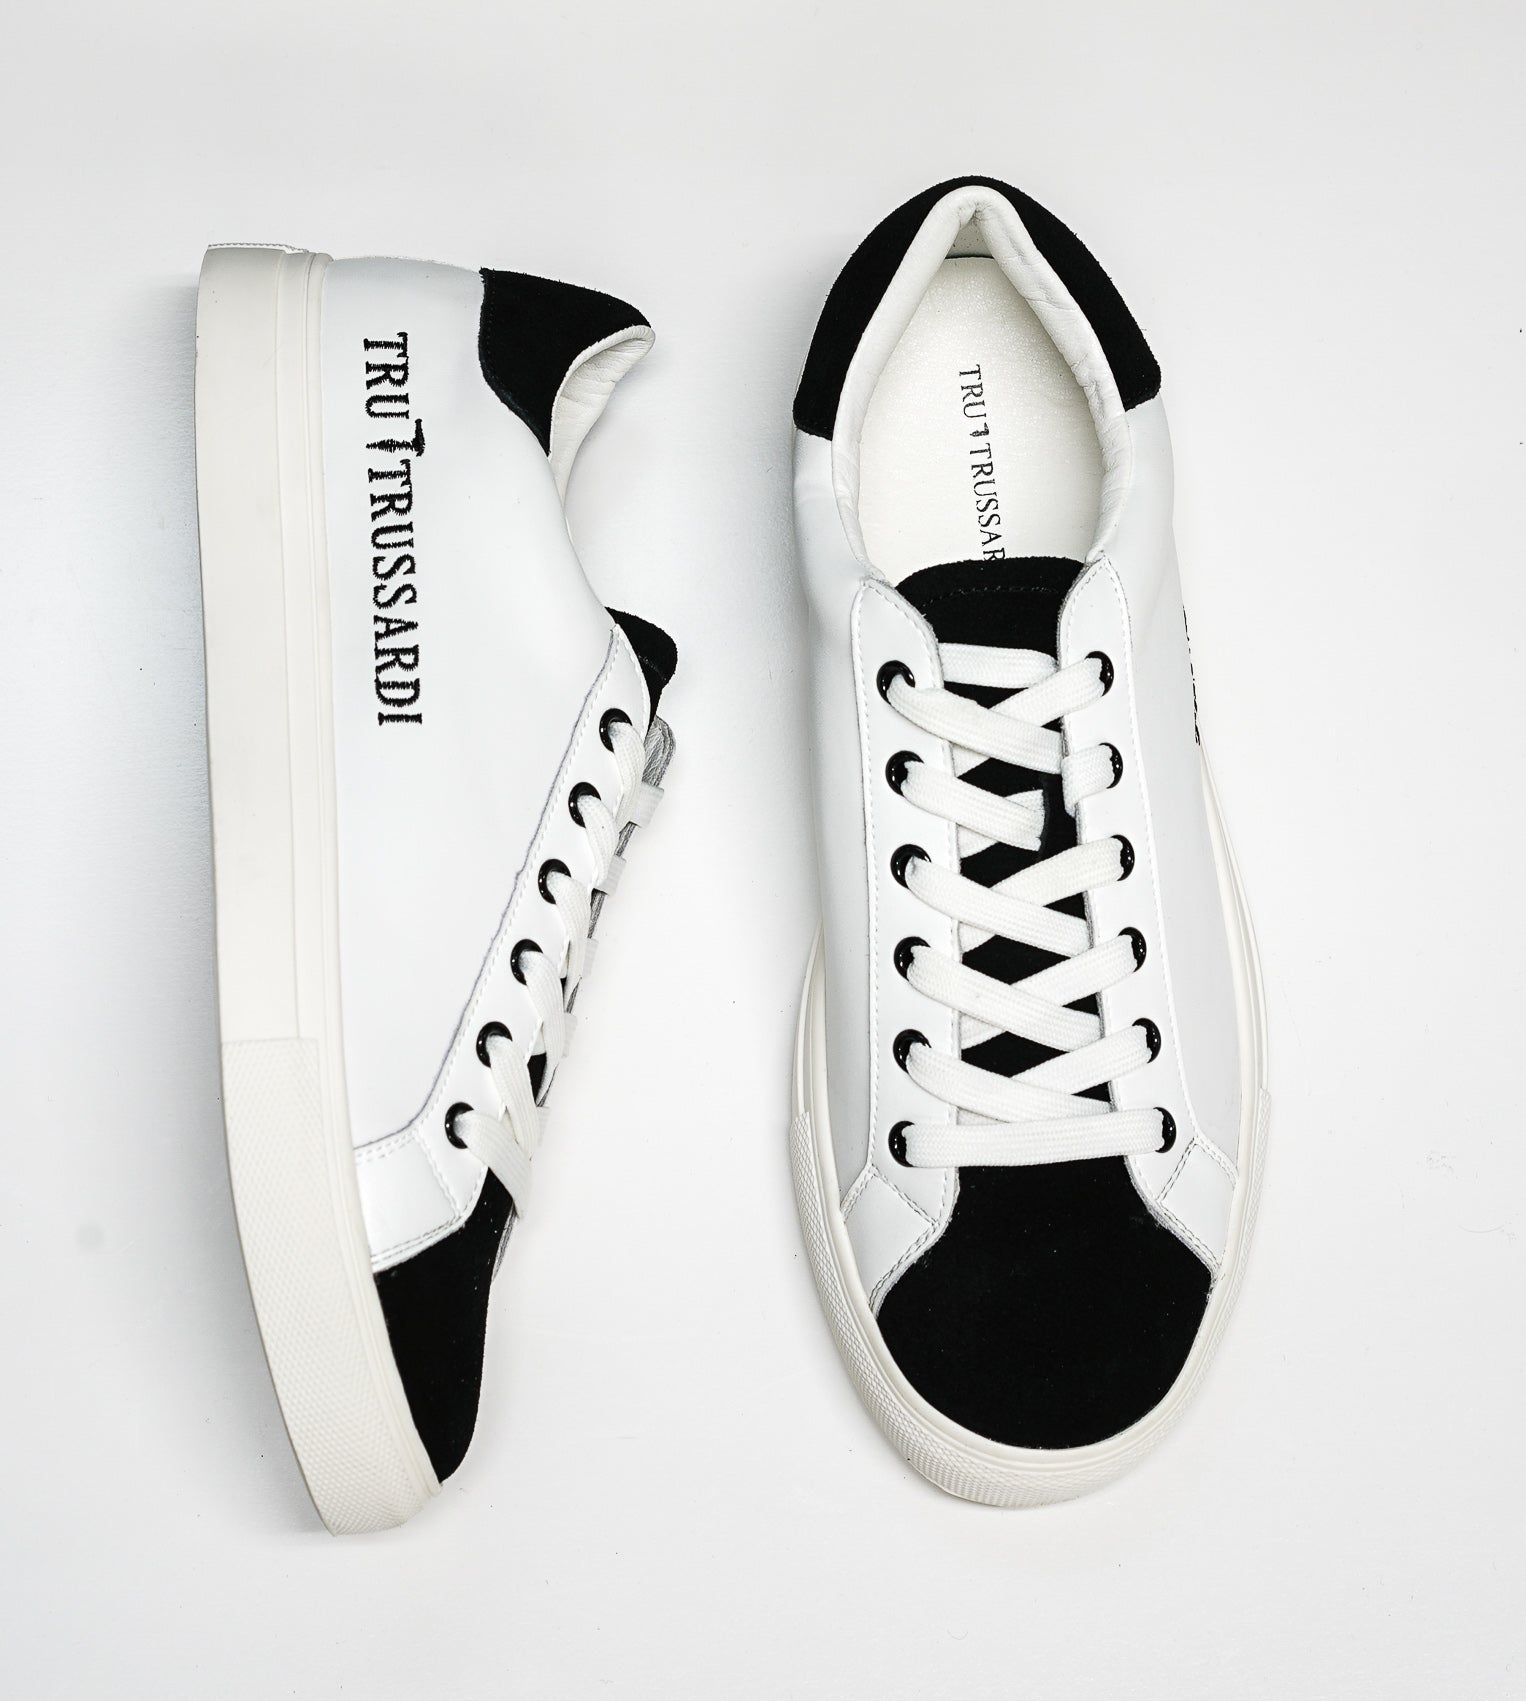 Trussardi Men's White & Black Sneakers W750